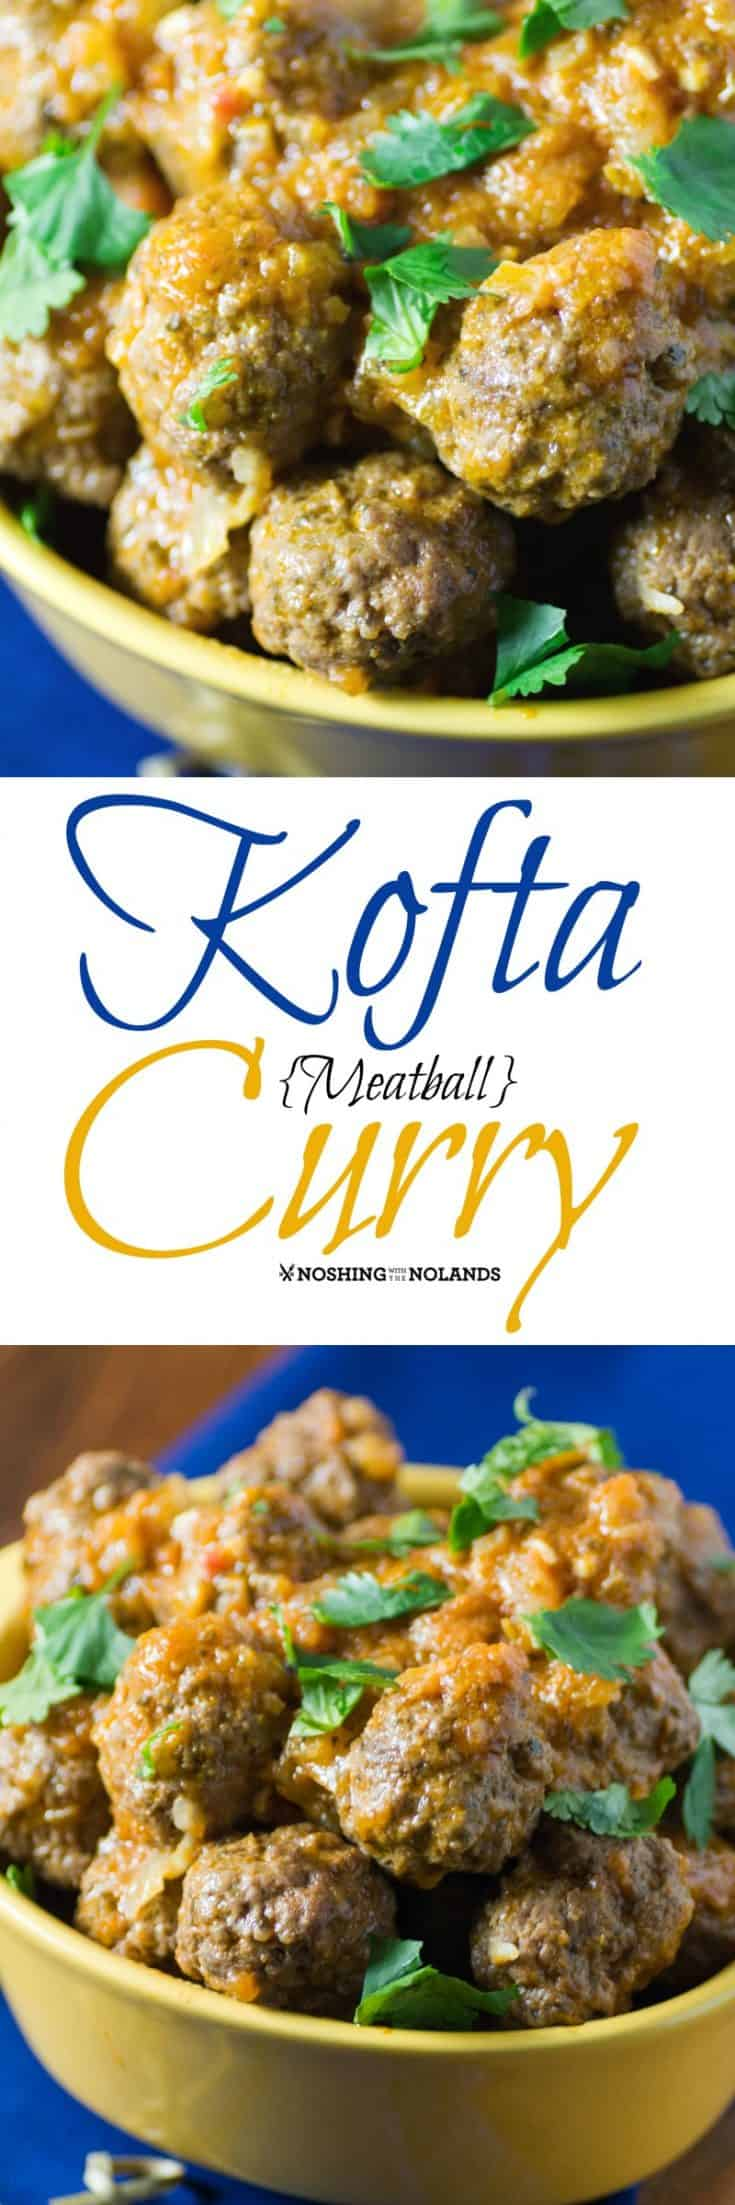 Everyone loves meatballs and these spice-filled delicacies disappeared quickly during our photo shoot for the book. They are as delicious as they look. #meatballs #curry